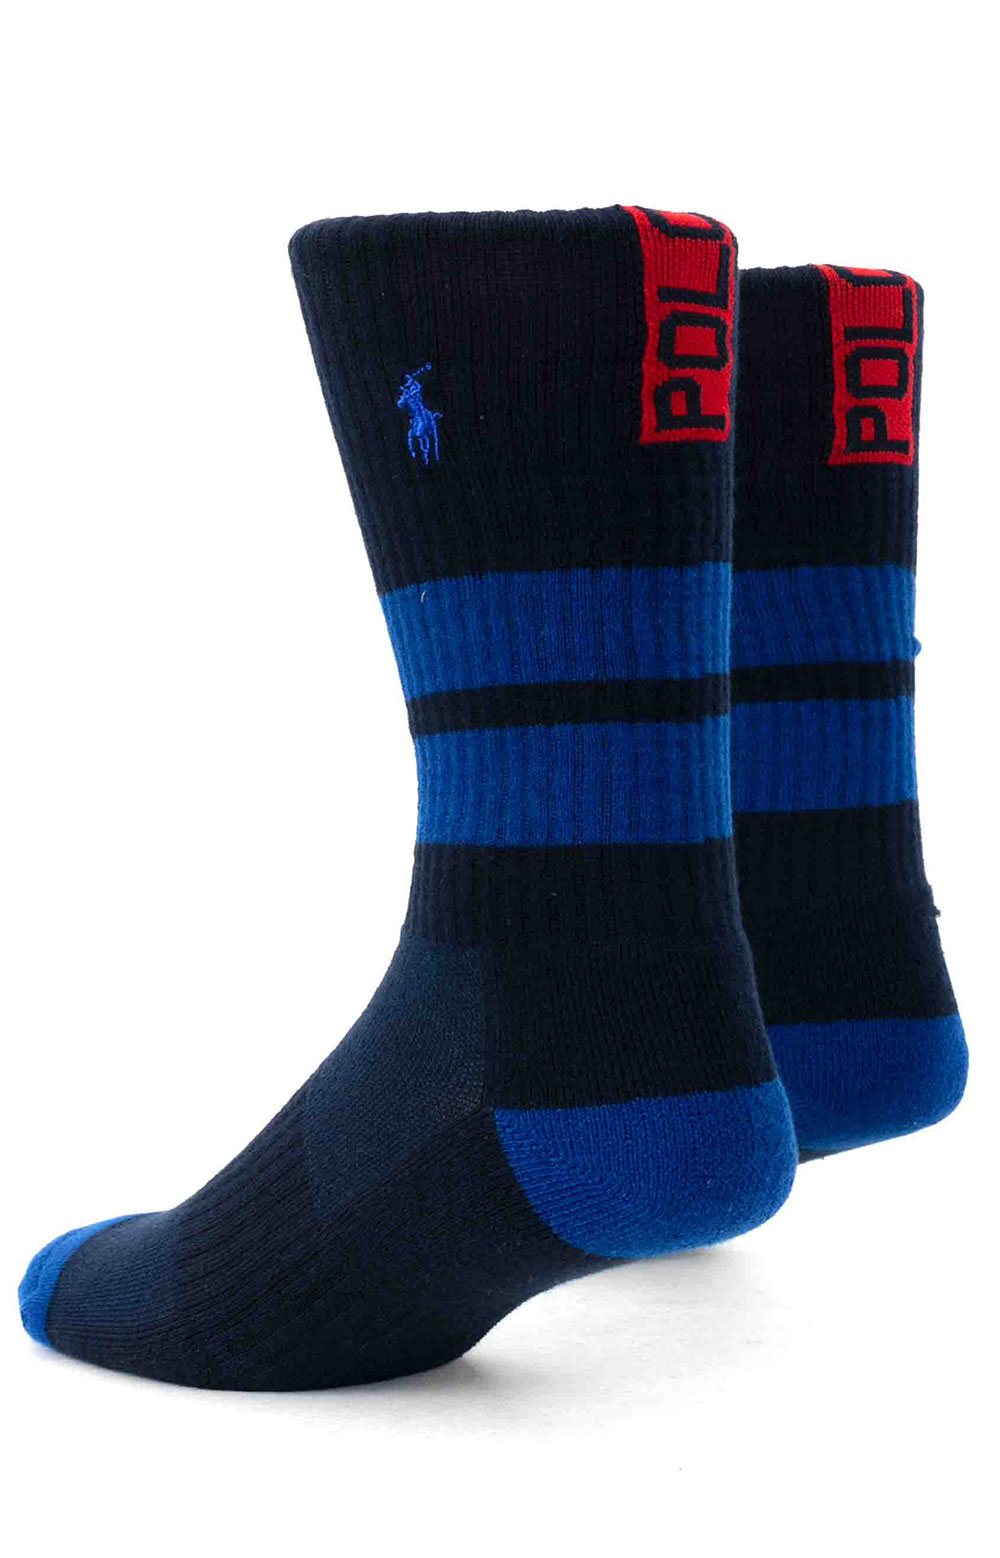 Colorblock Cushioned Crew Socks - 6 Pack 5